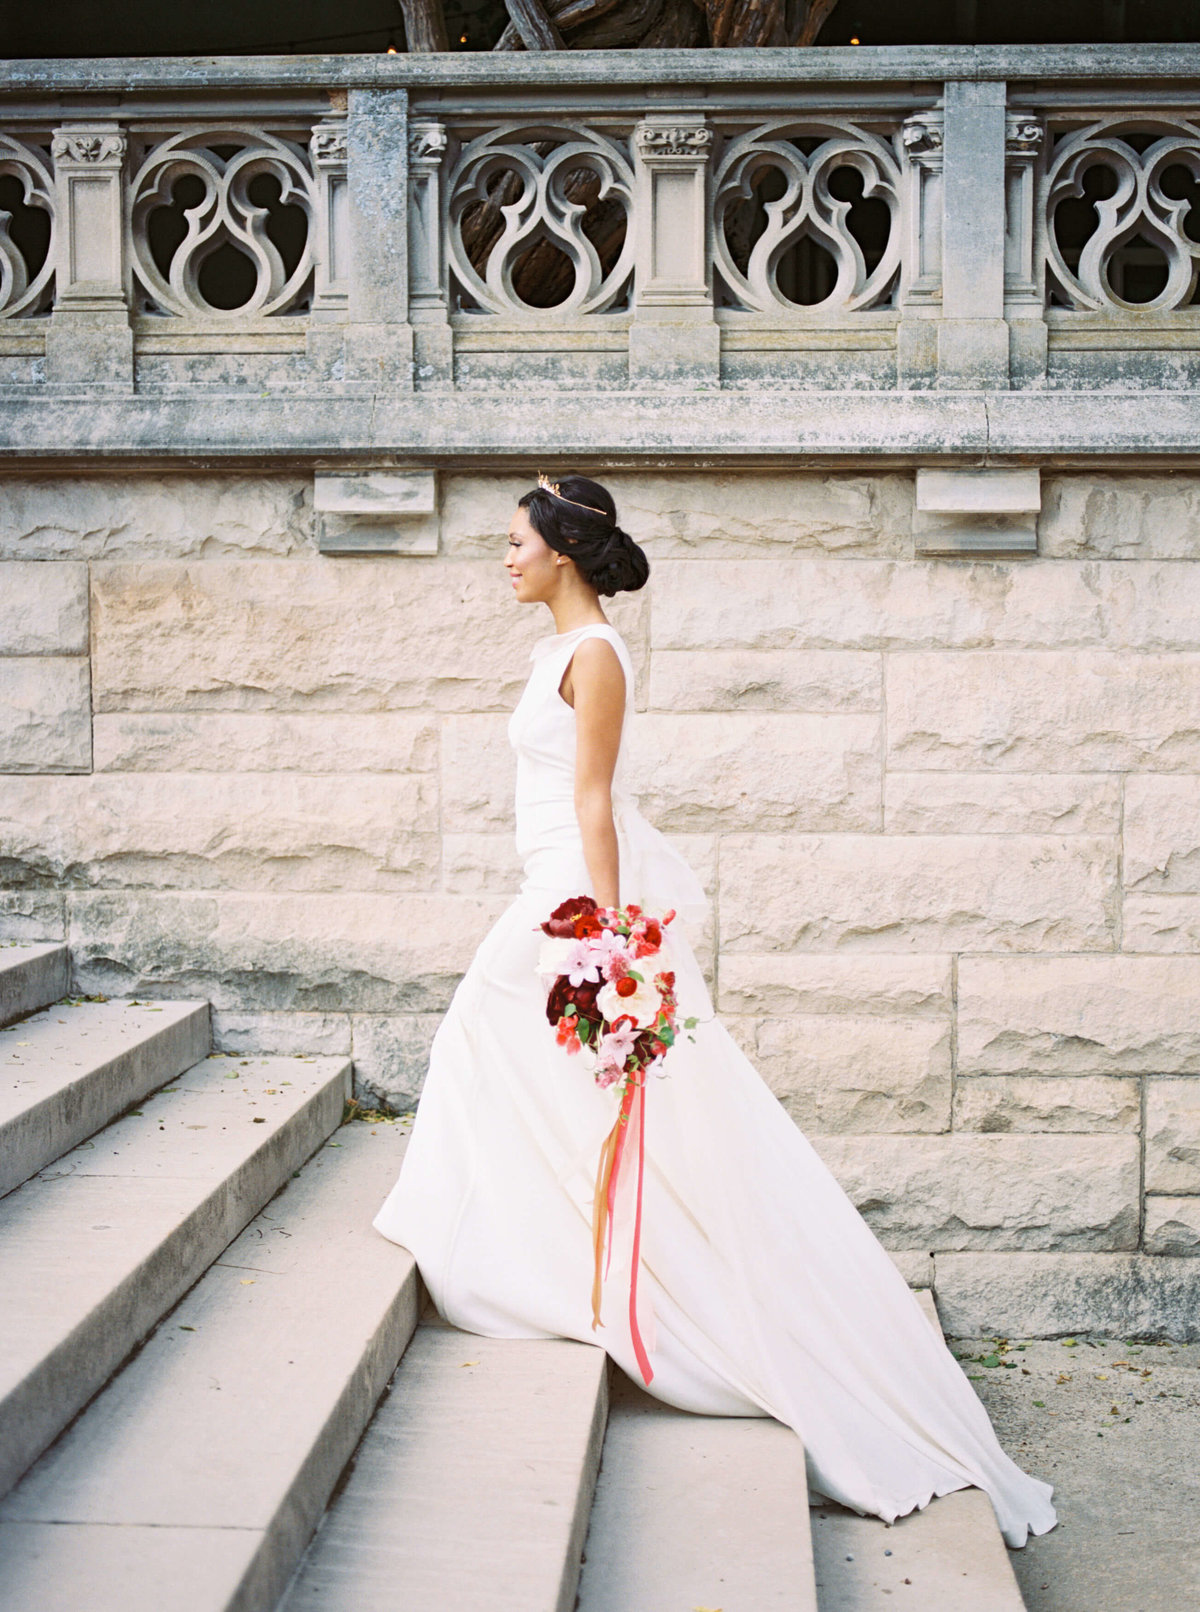 Biltmore Estate wedding photographer, Asheville Wedding Photographer, Henry Photography-34